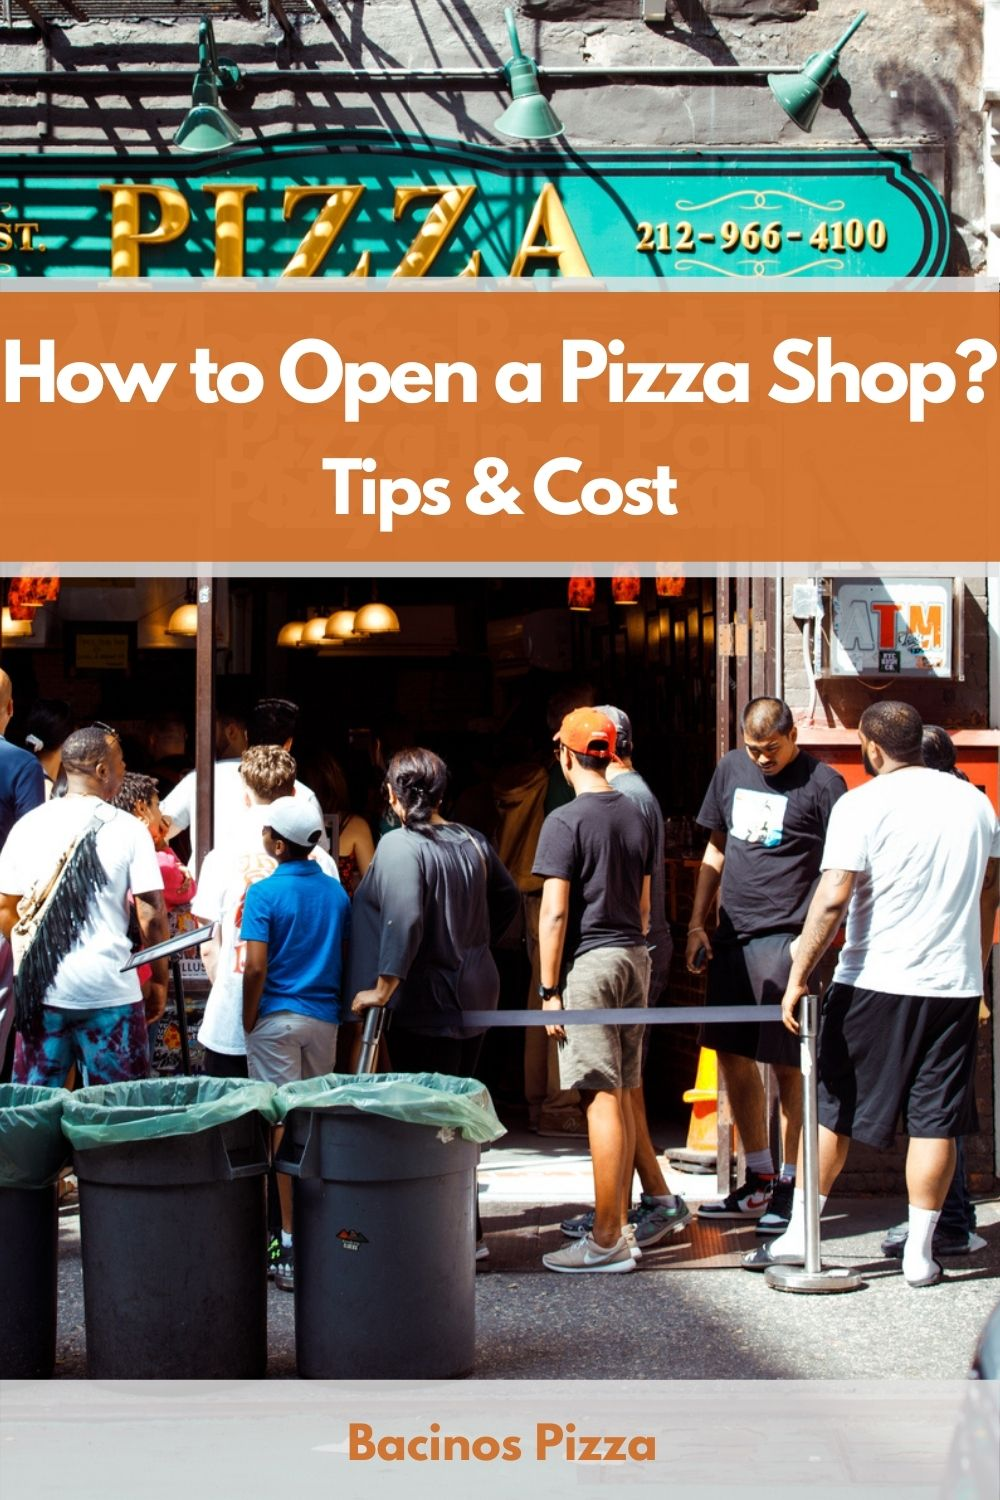 How to Open a Pizza Shop pin